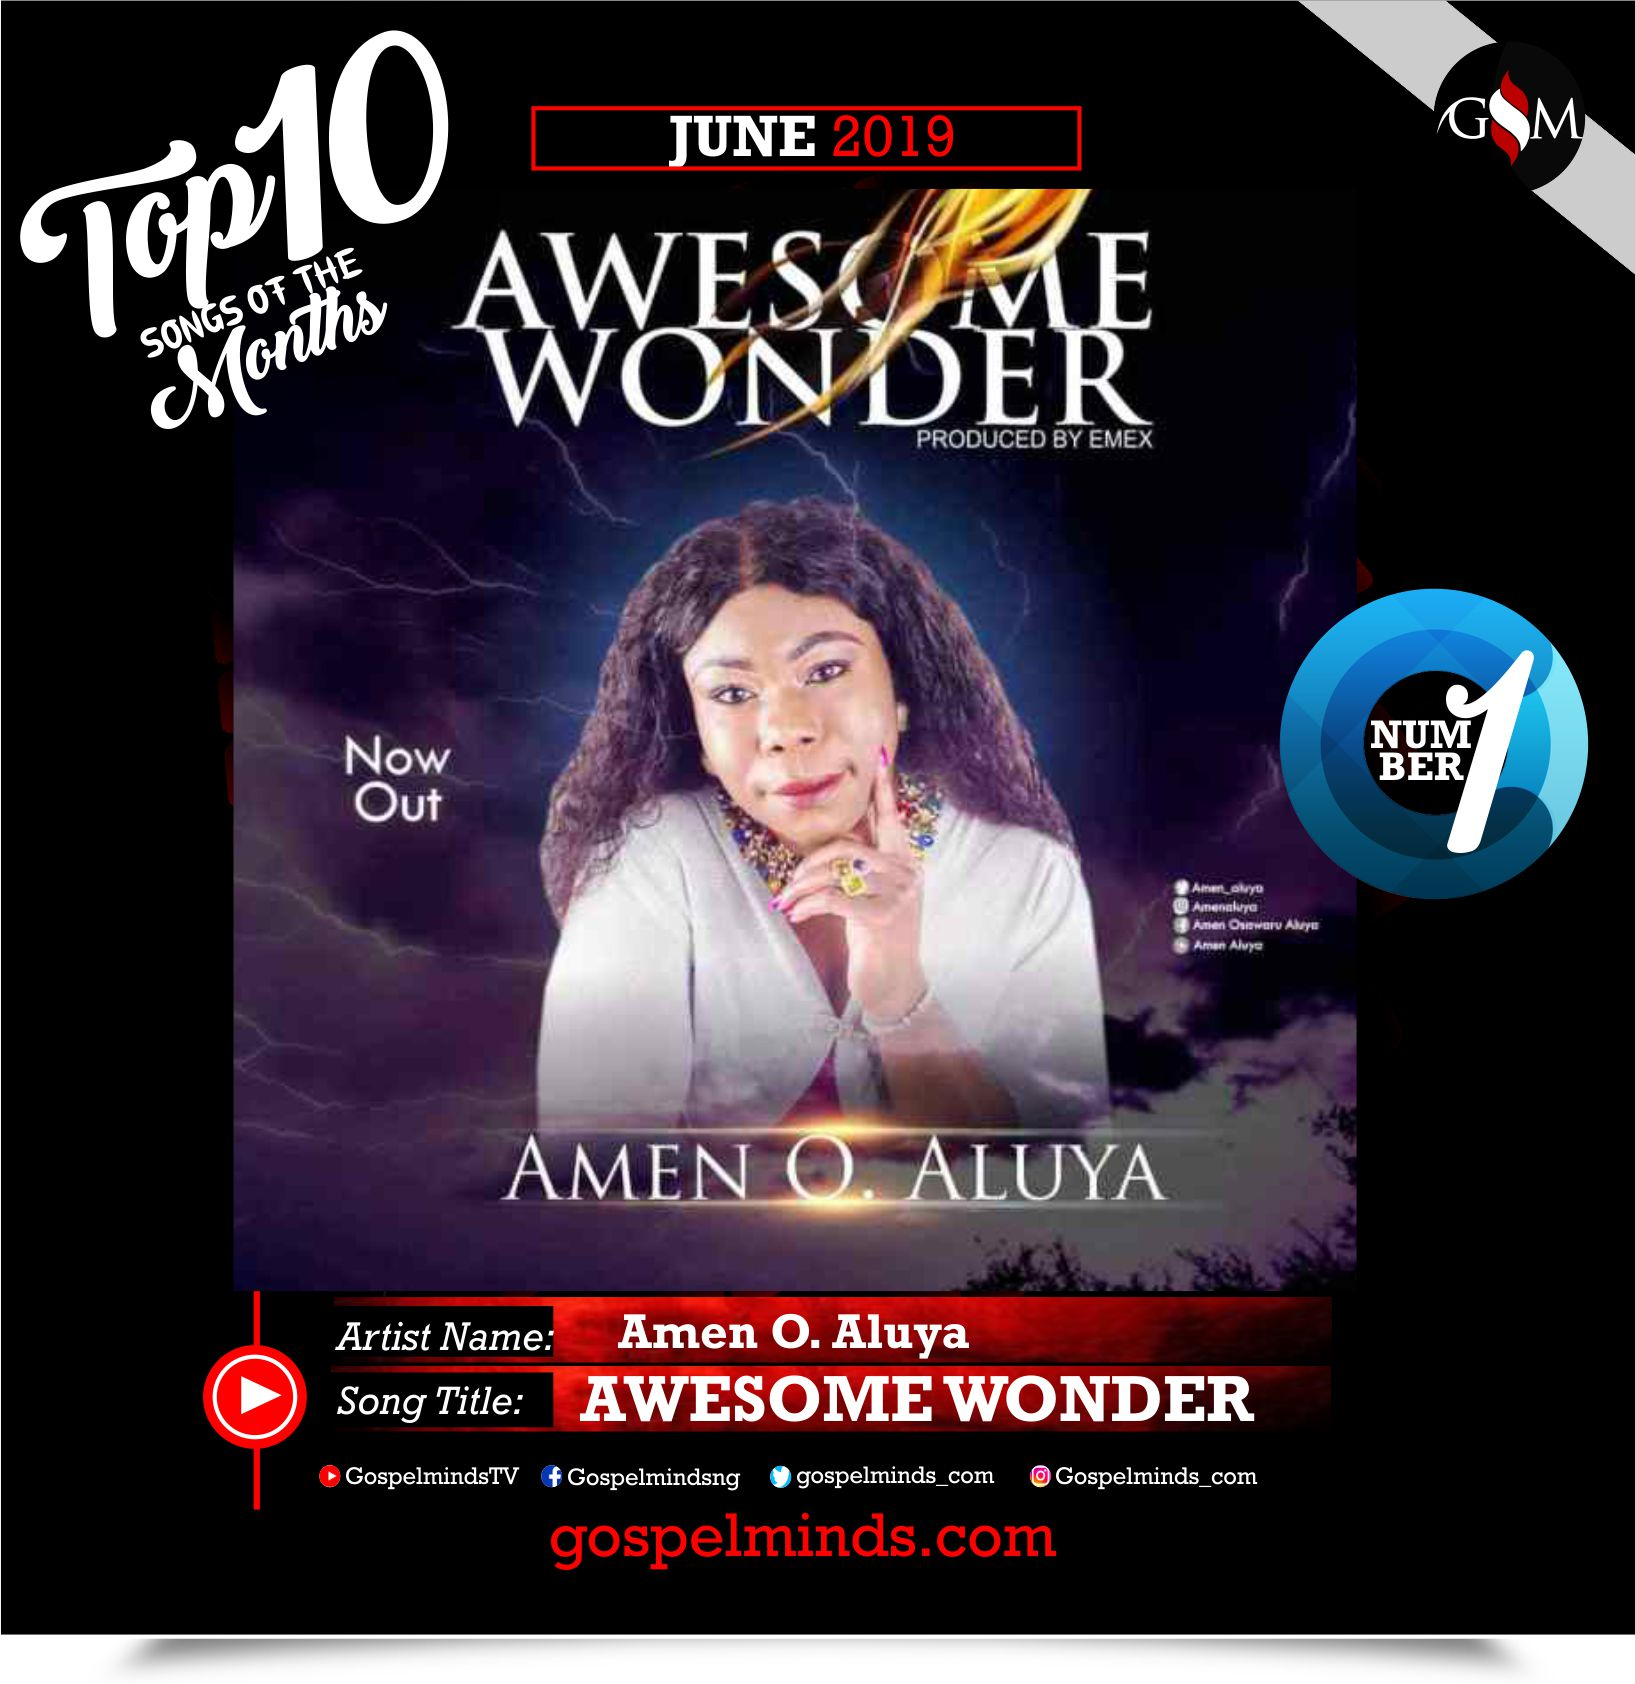 Top 10 Gospel Songs of The Month - June 2019 GospelMinds Ent. (Amen O. Aluya - Awesome Wonder)